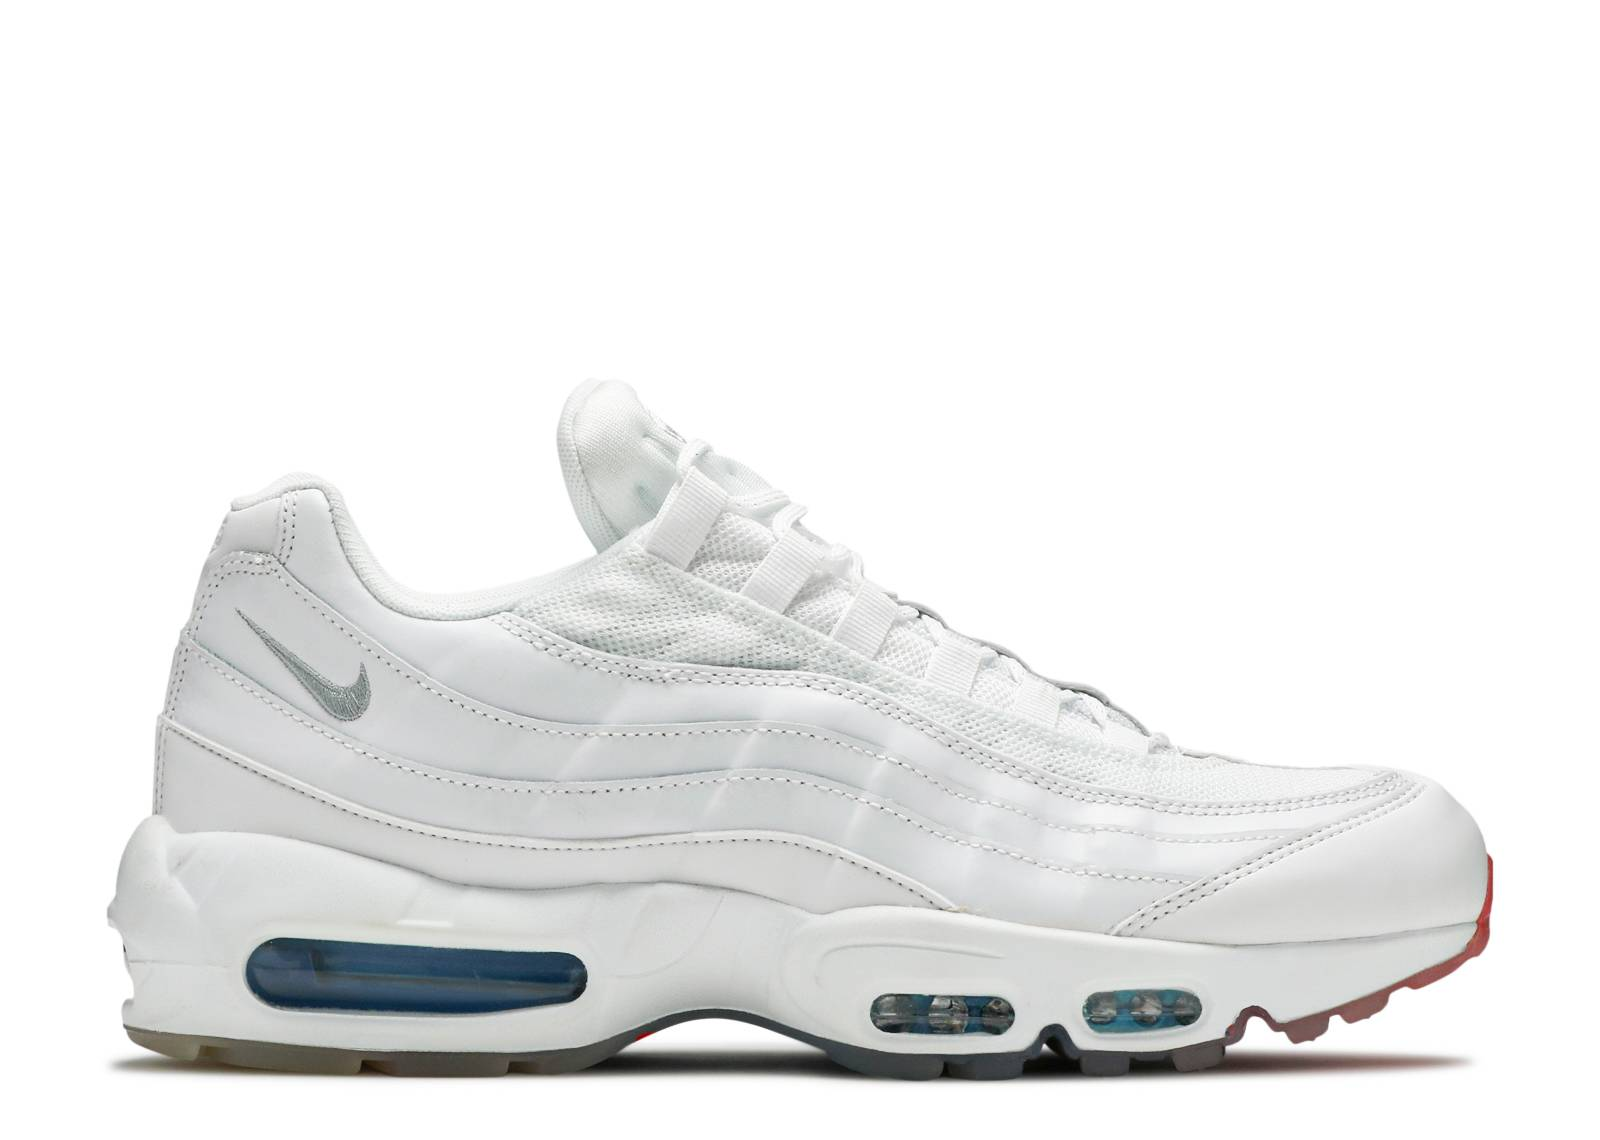 reputable site e3616 f761b Nike Air Max 95 - Nike - AQ7981 100 - white photo blue-glacier blue ...